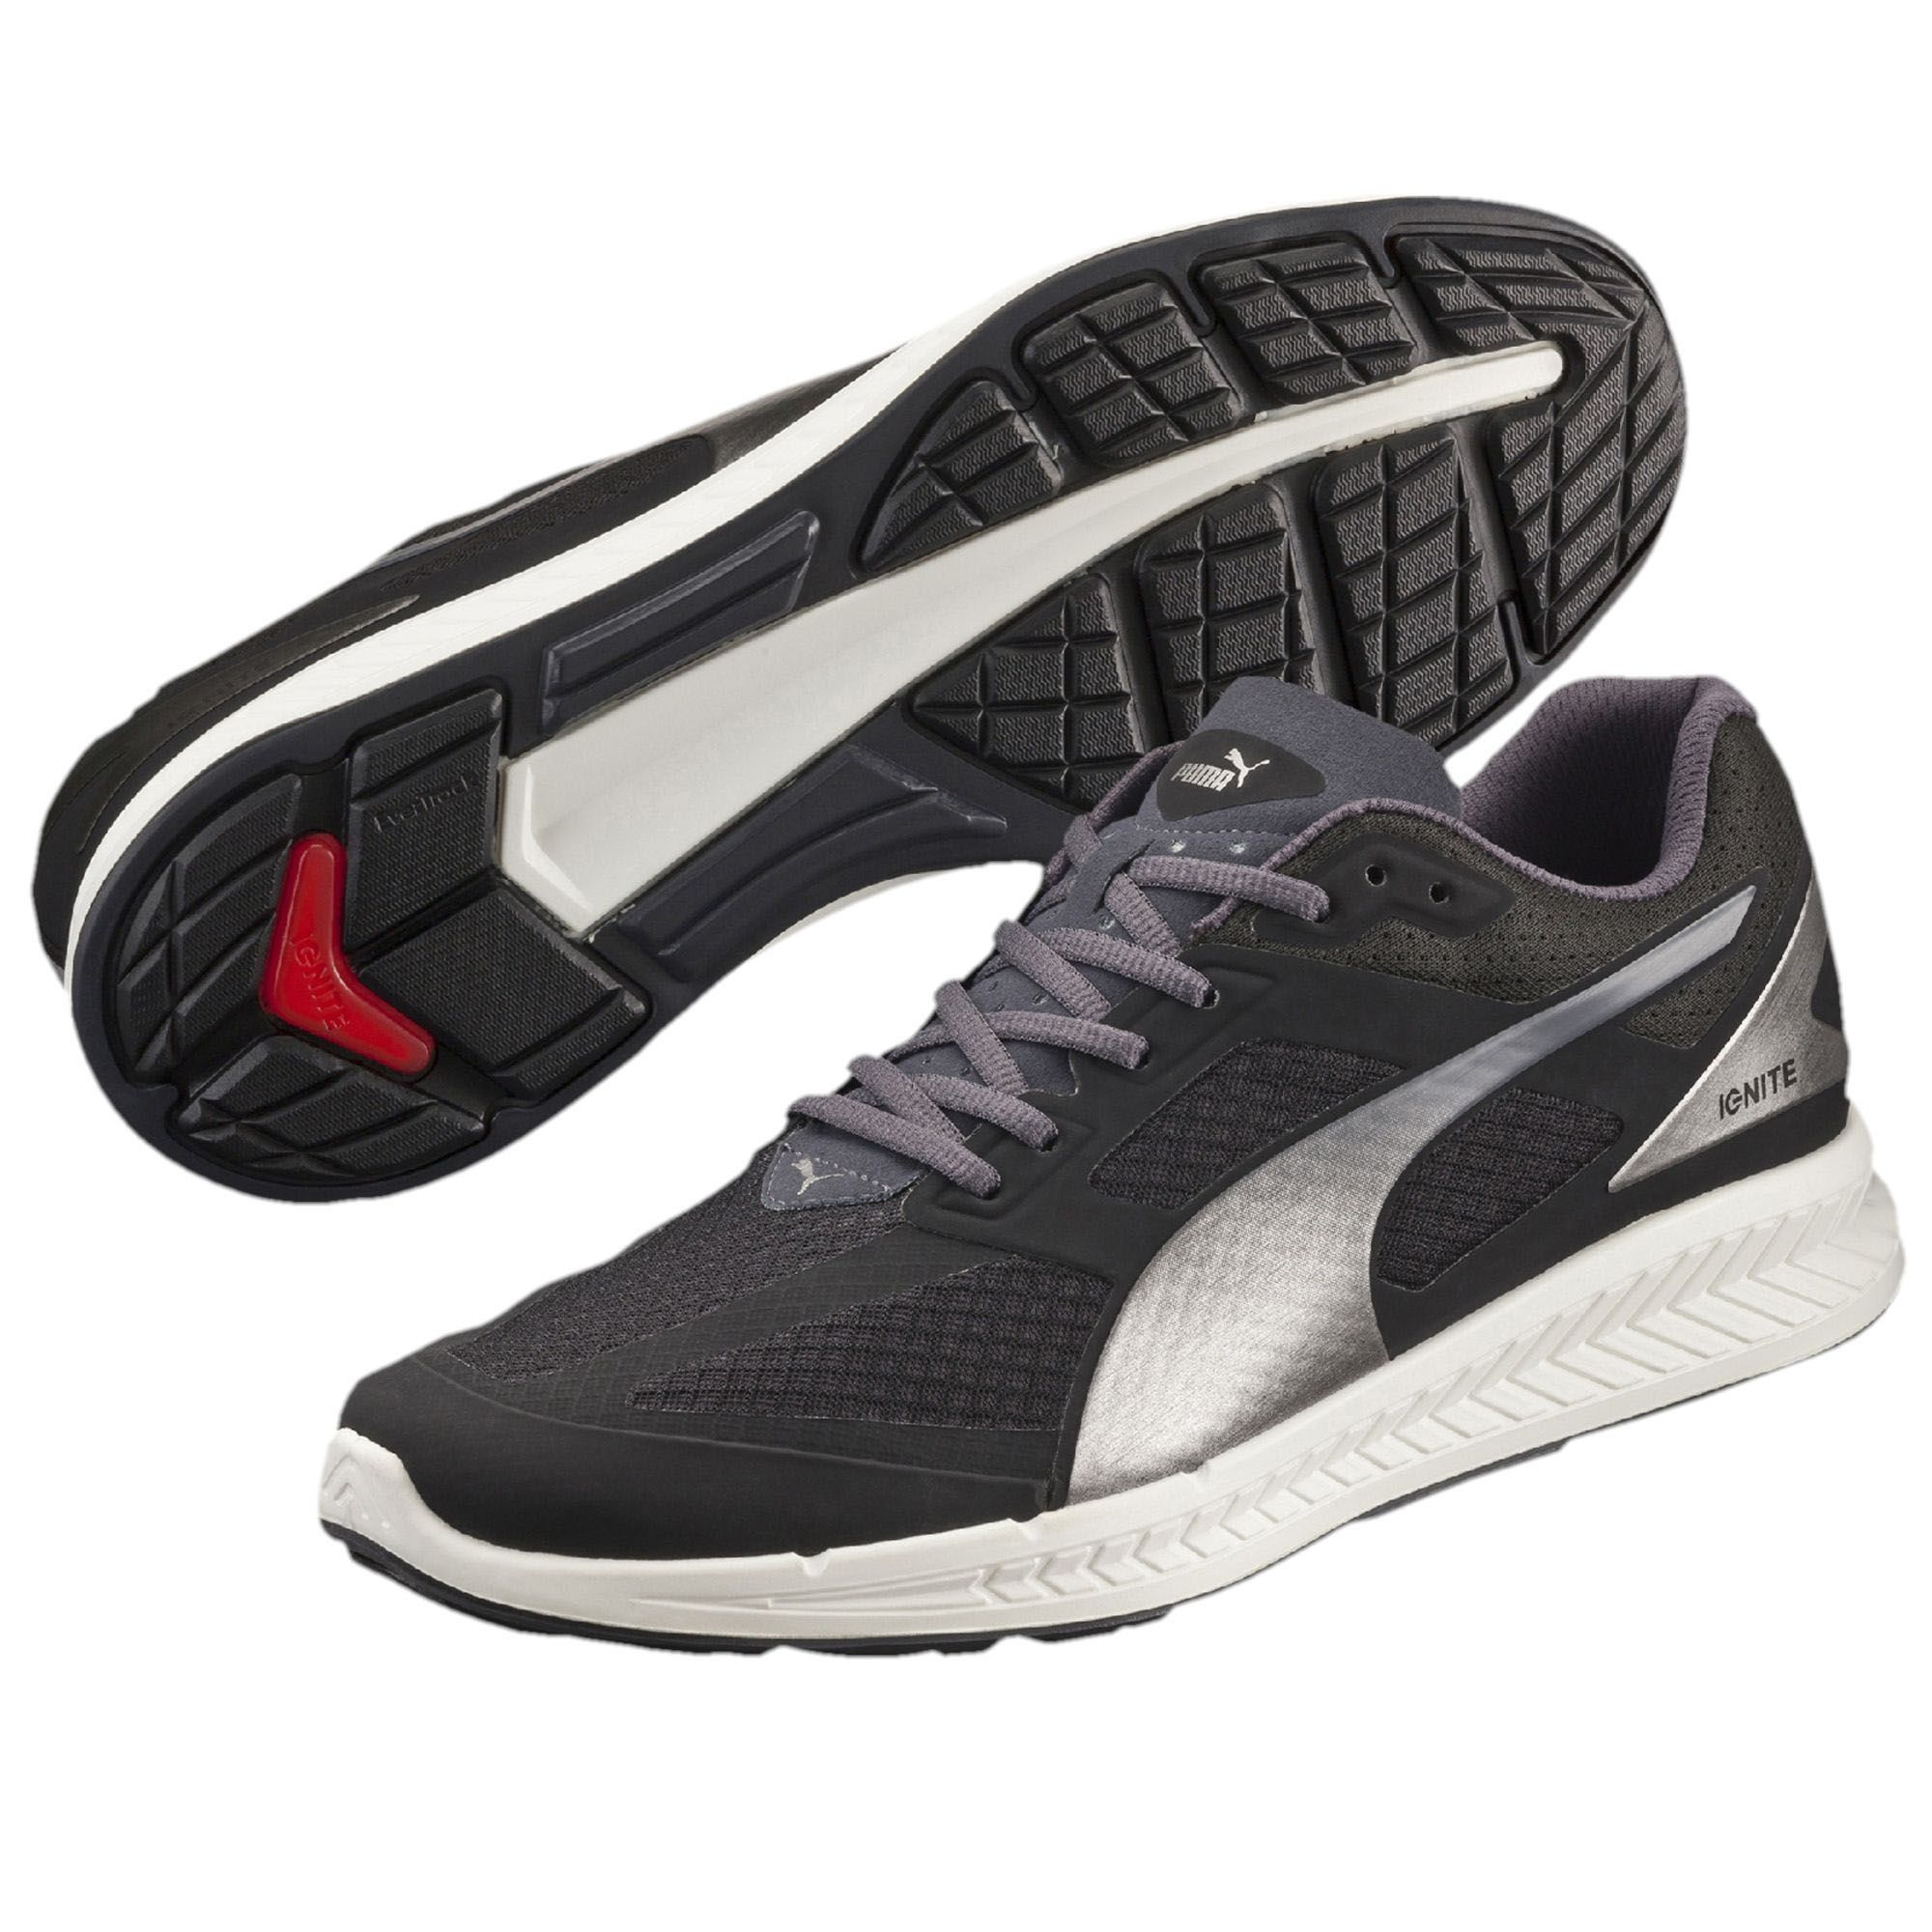 Puma Running Shoes Guide